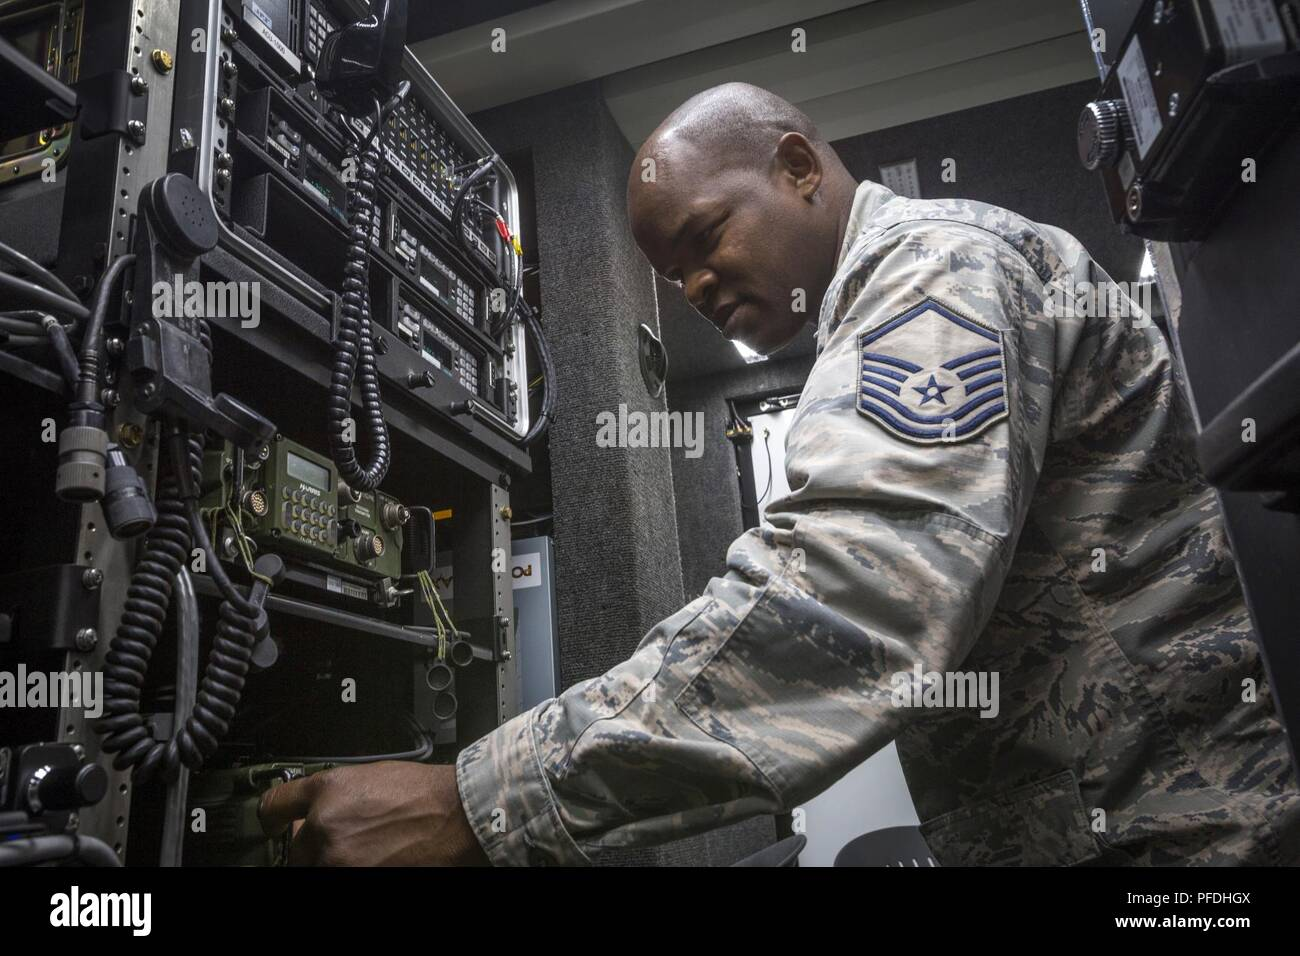 the noncommissioned officer support channel is in nature